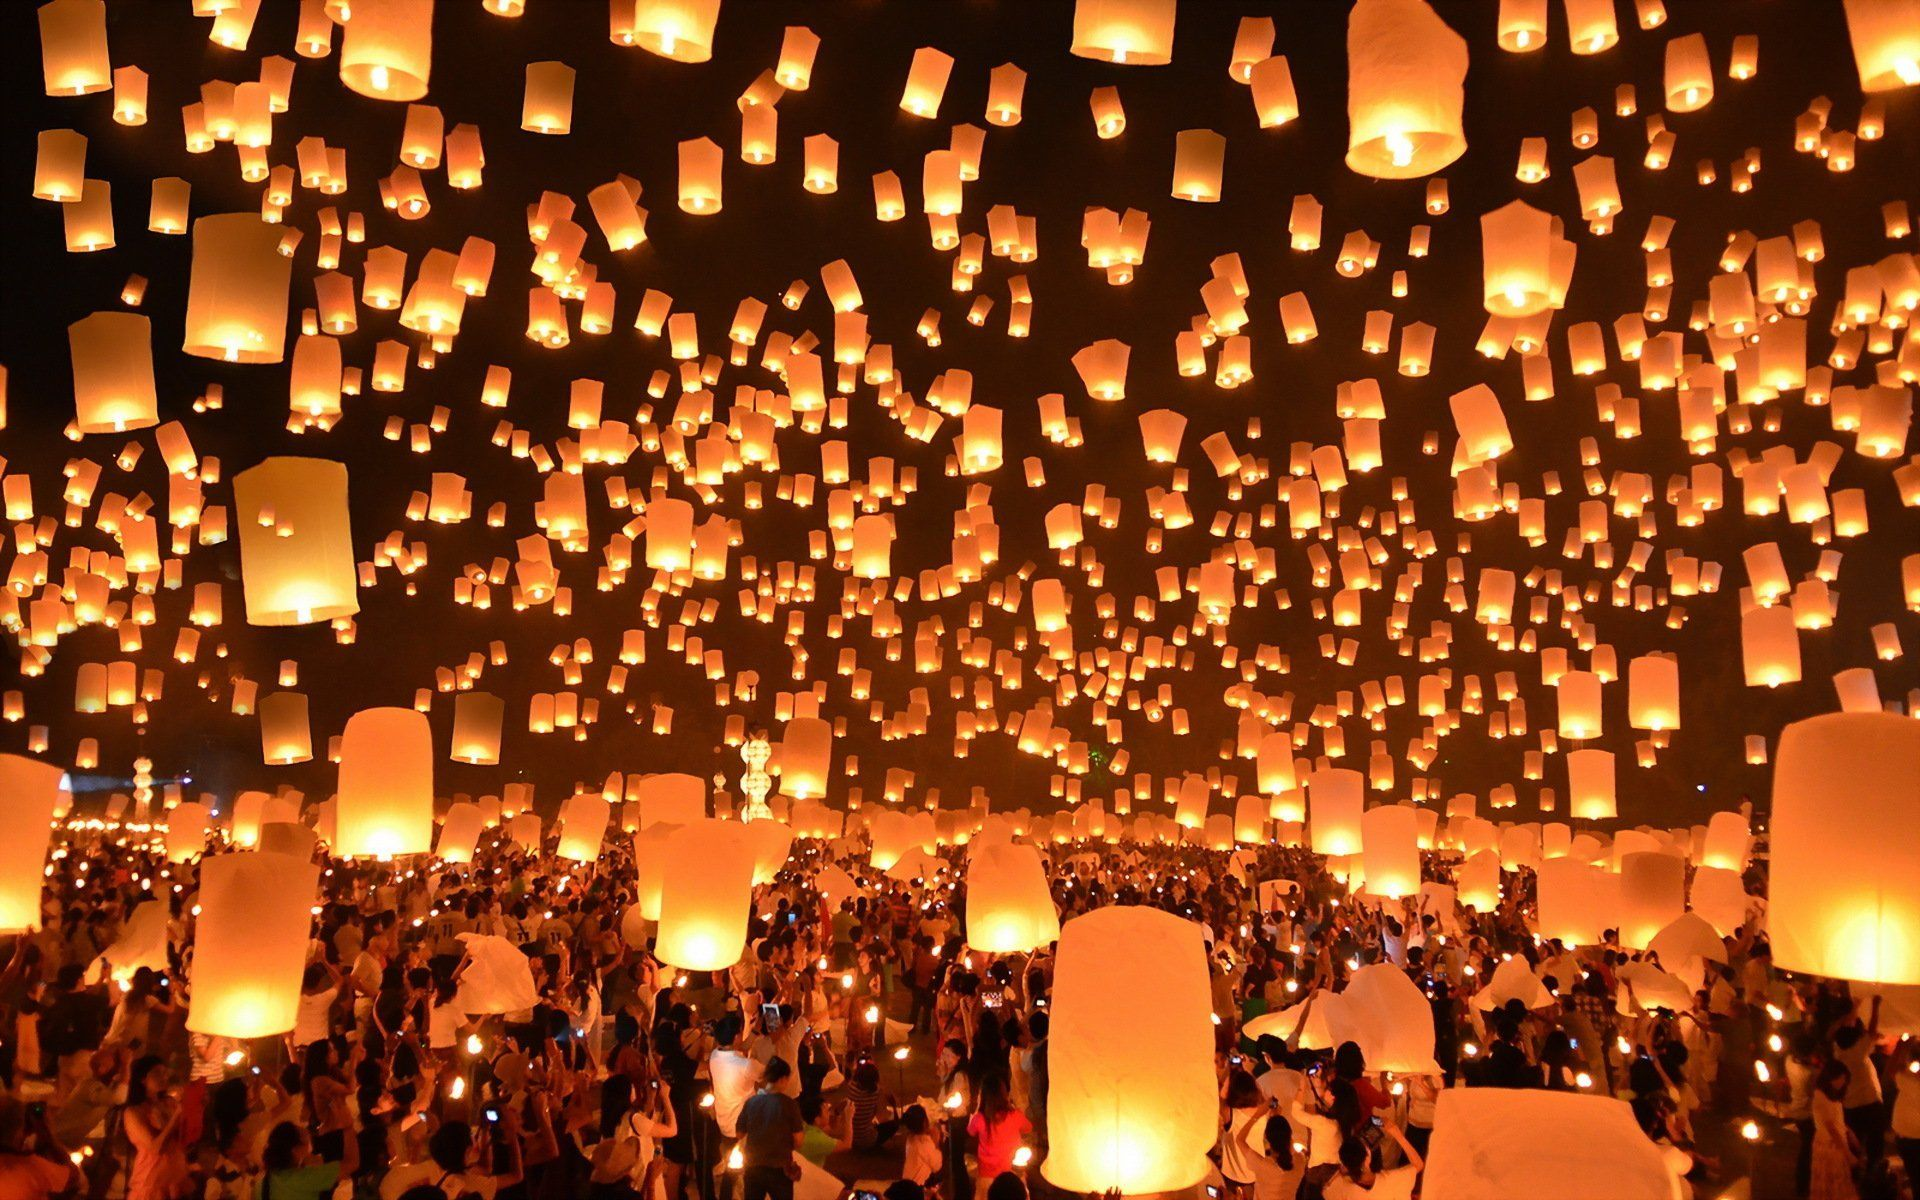 Floating Lanterns Wallpapers Top Free Floating Lanterns Backgrounds Wallpaperaccess